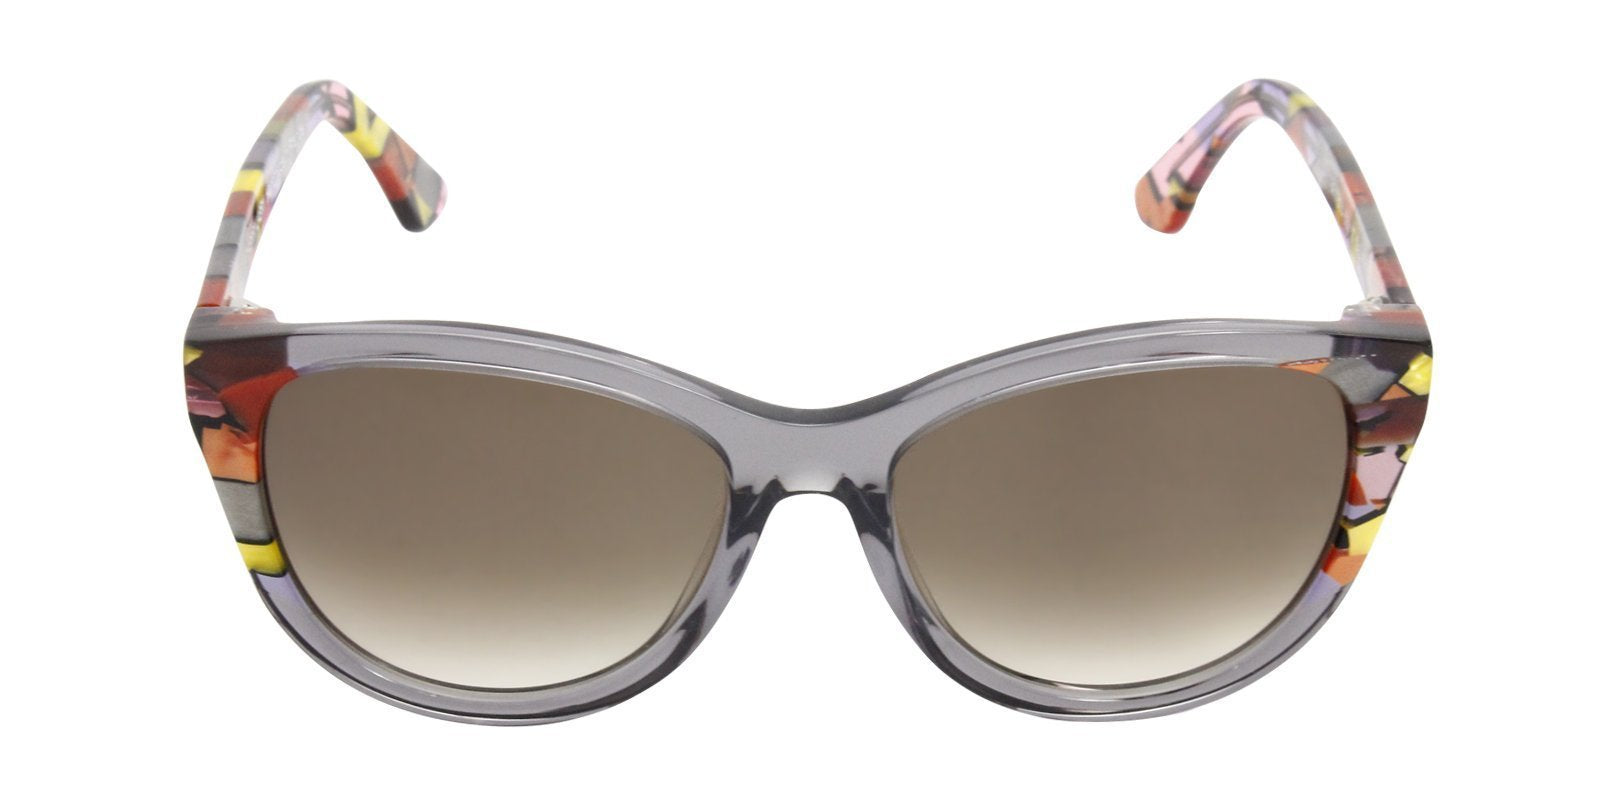 Thierry Lasry - Flattery Gray Oval Women Sunglasses - 55mm-Sunglasses-Designer Eyes